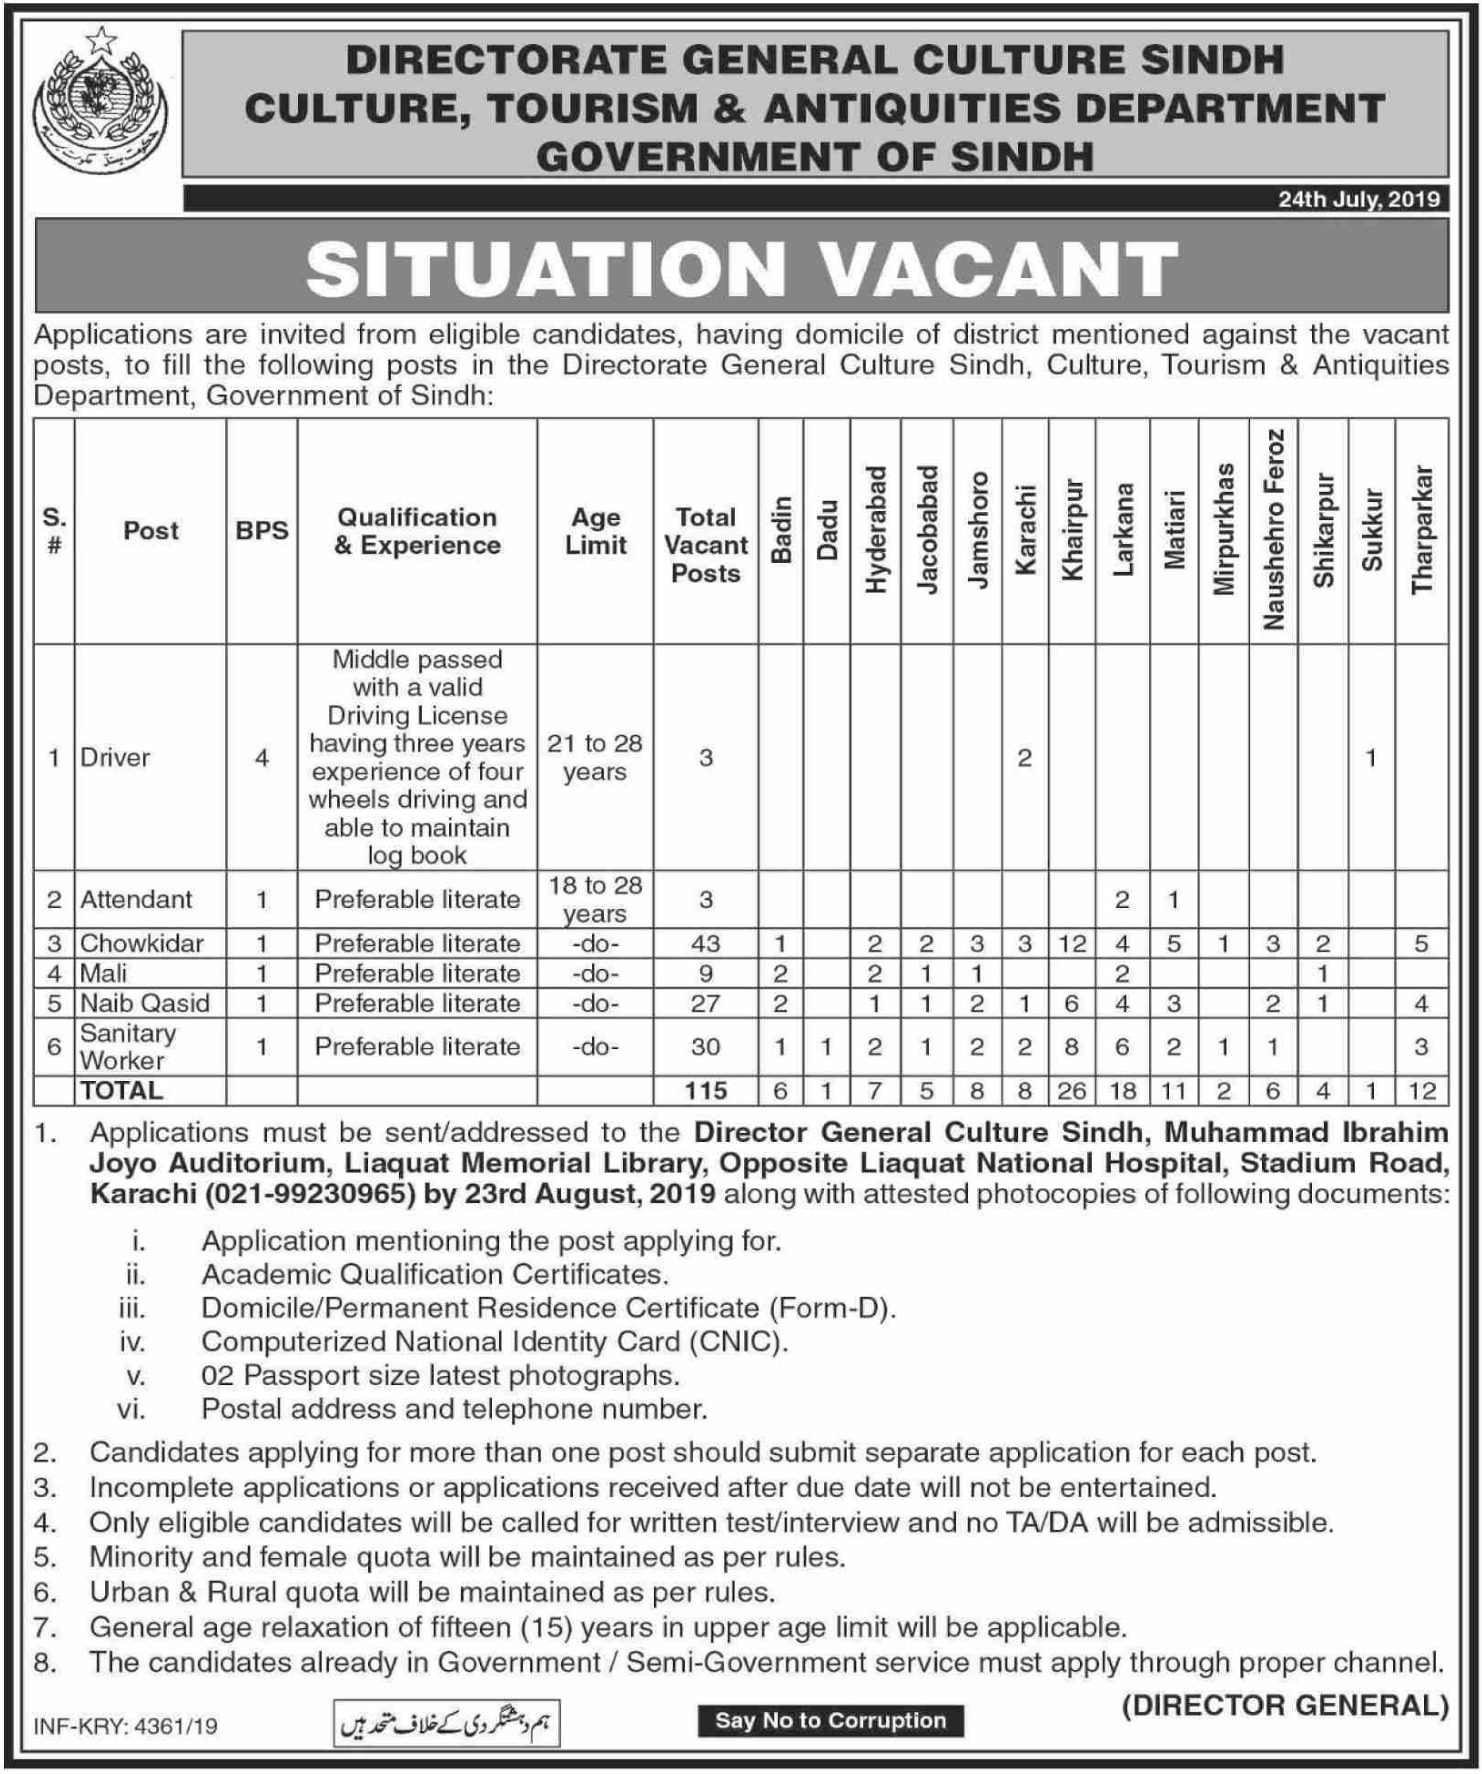 Culture Tourism & Antiquities Department Government of Sindh Jobs 2019